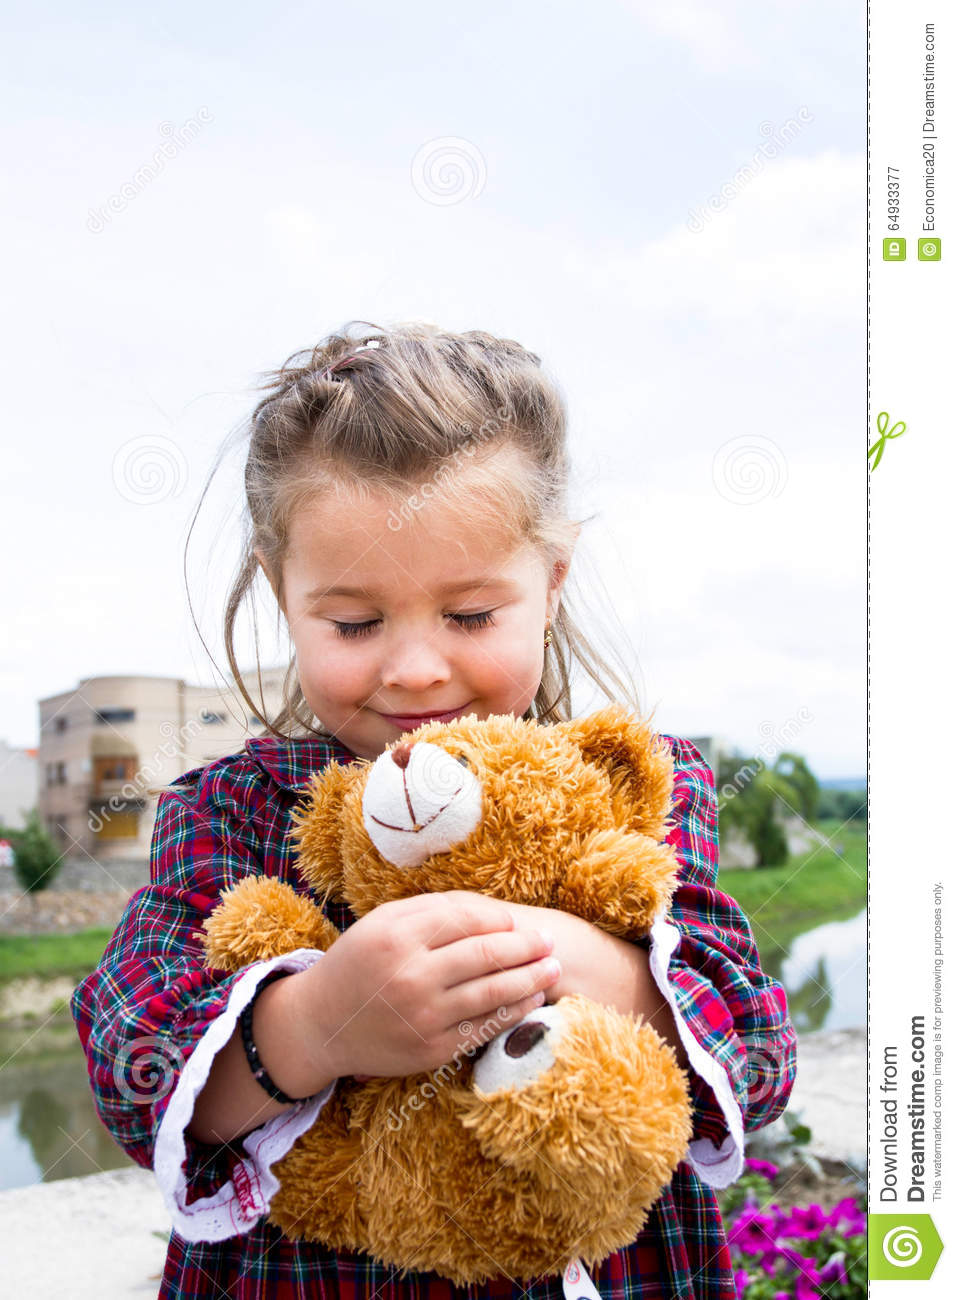 Sweet little holding teddy bear in her arms